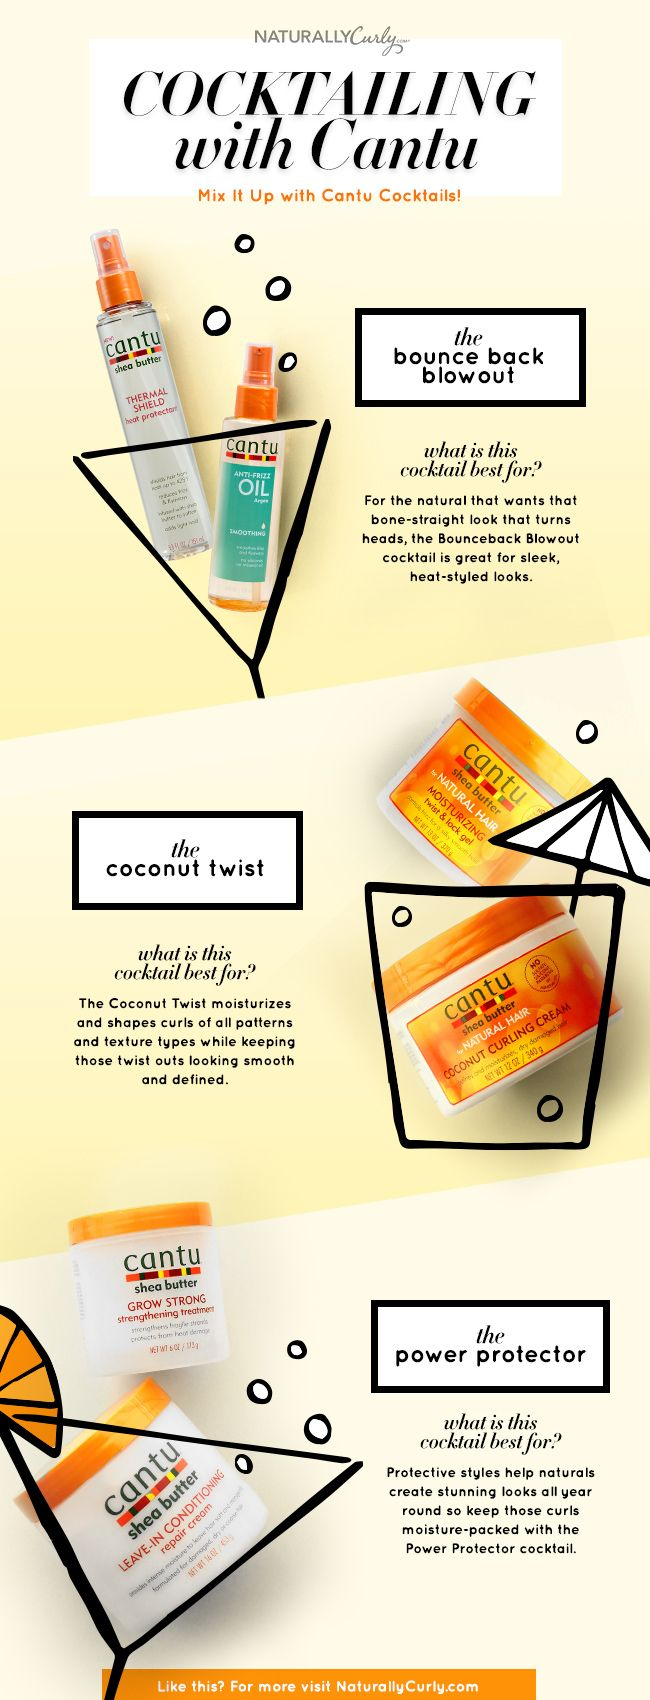 Determine which of these Cantu Shea Butter Cocktails works best for curls, coils, kinks, and waves.